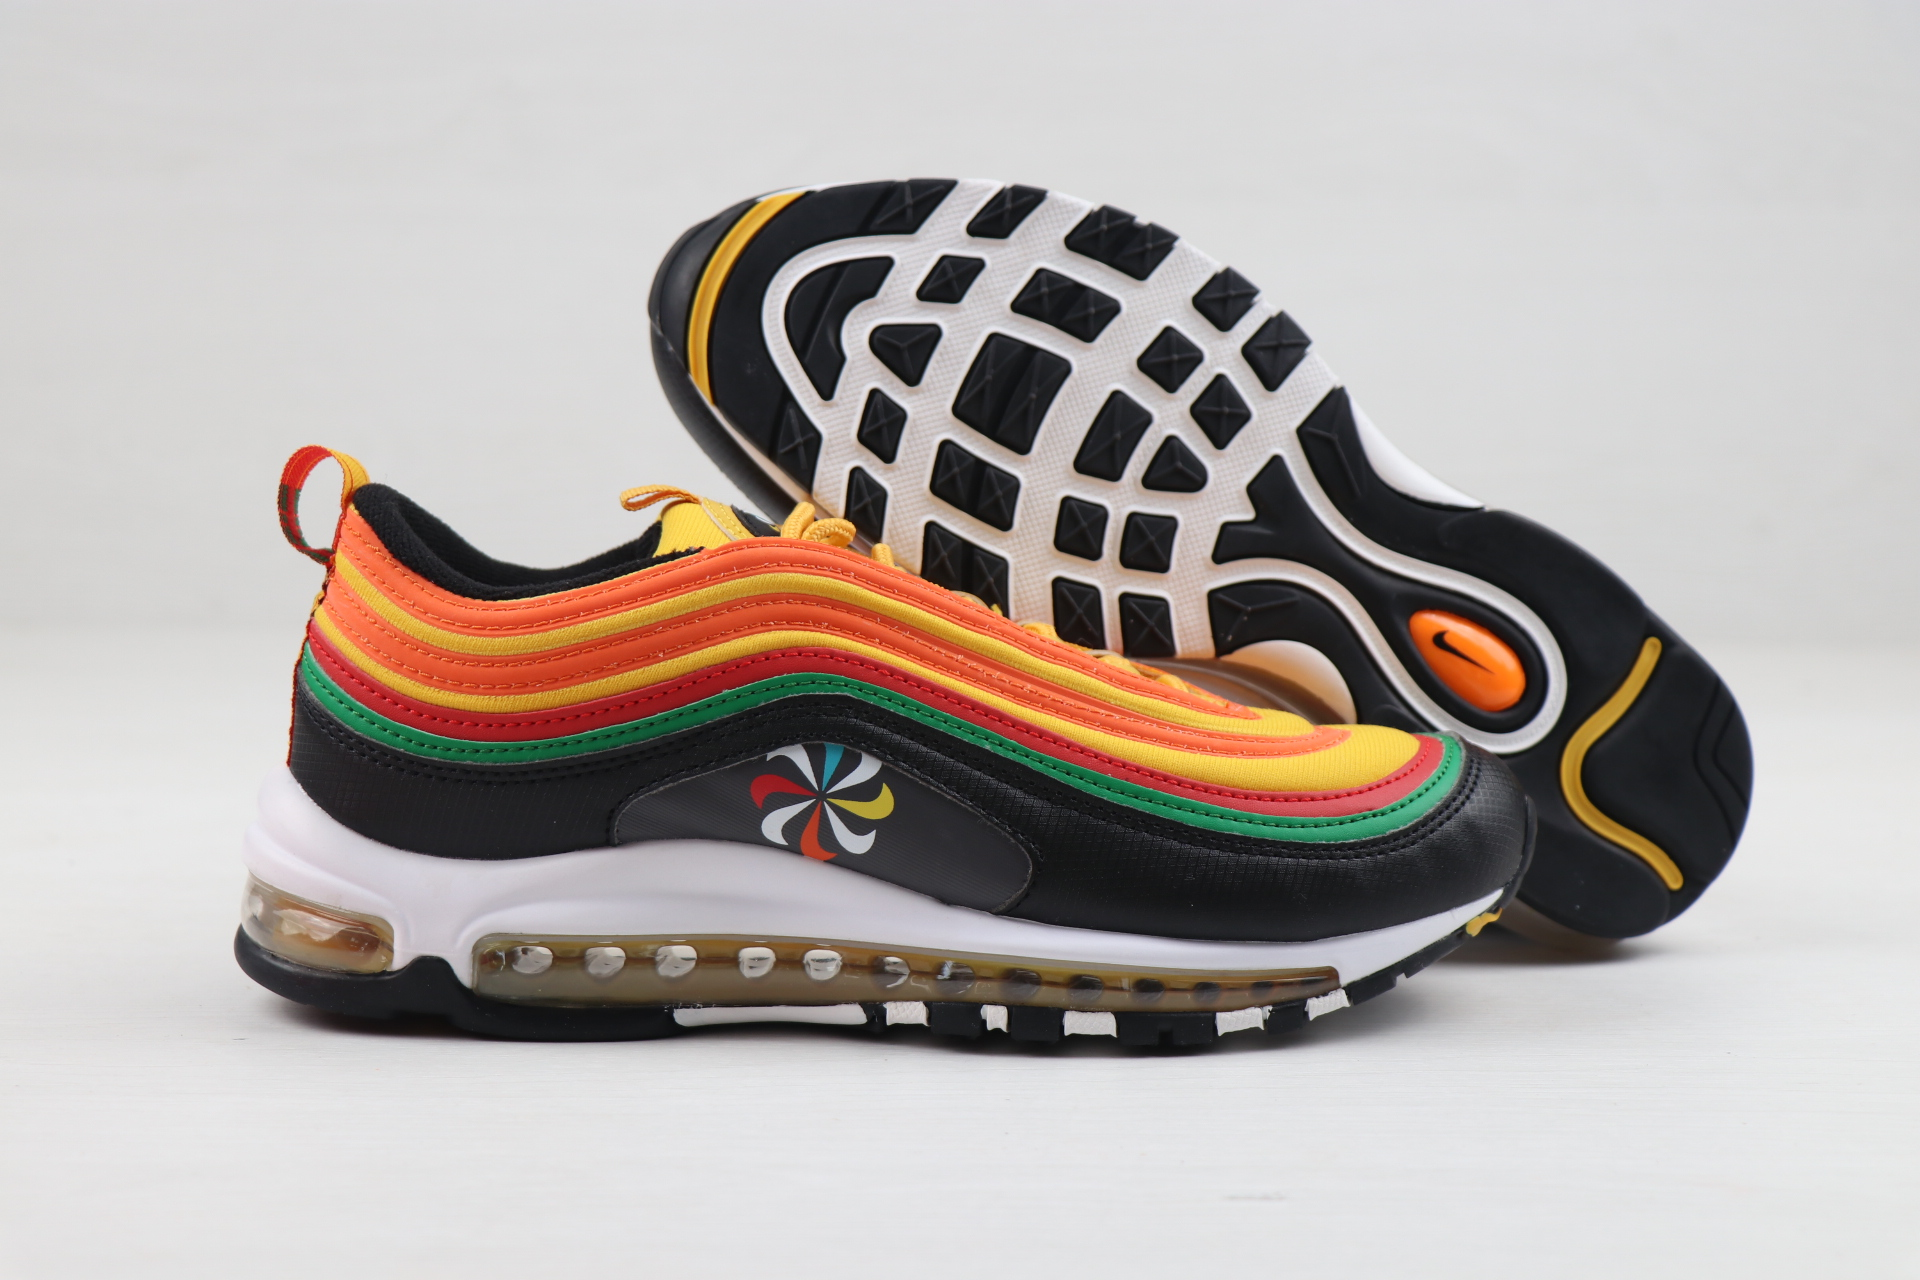 Men's Running weapon Air Max 97 Shoes 018